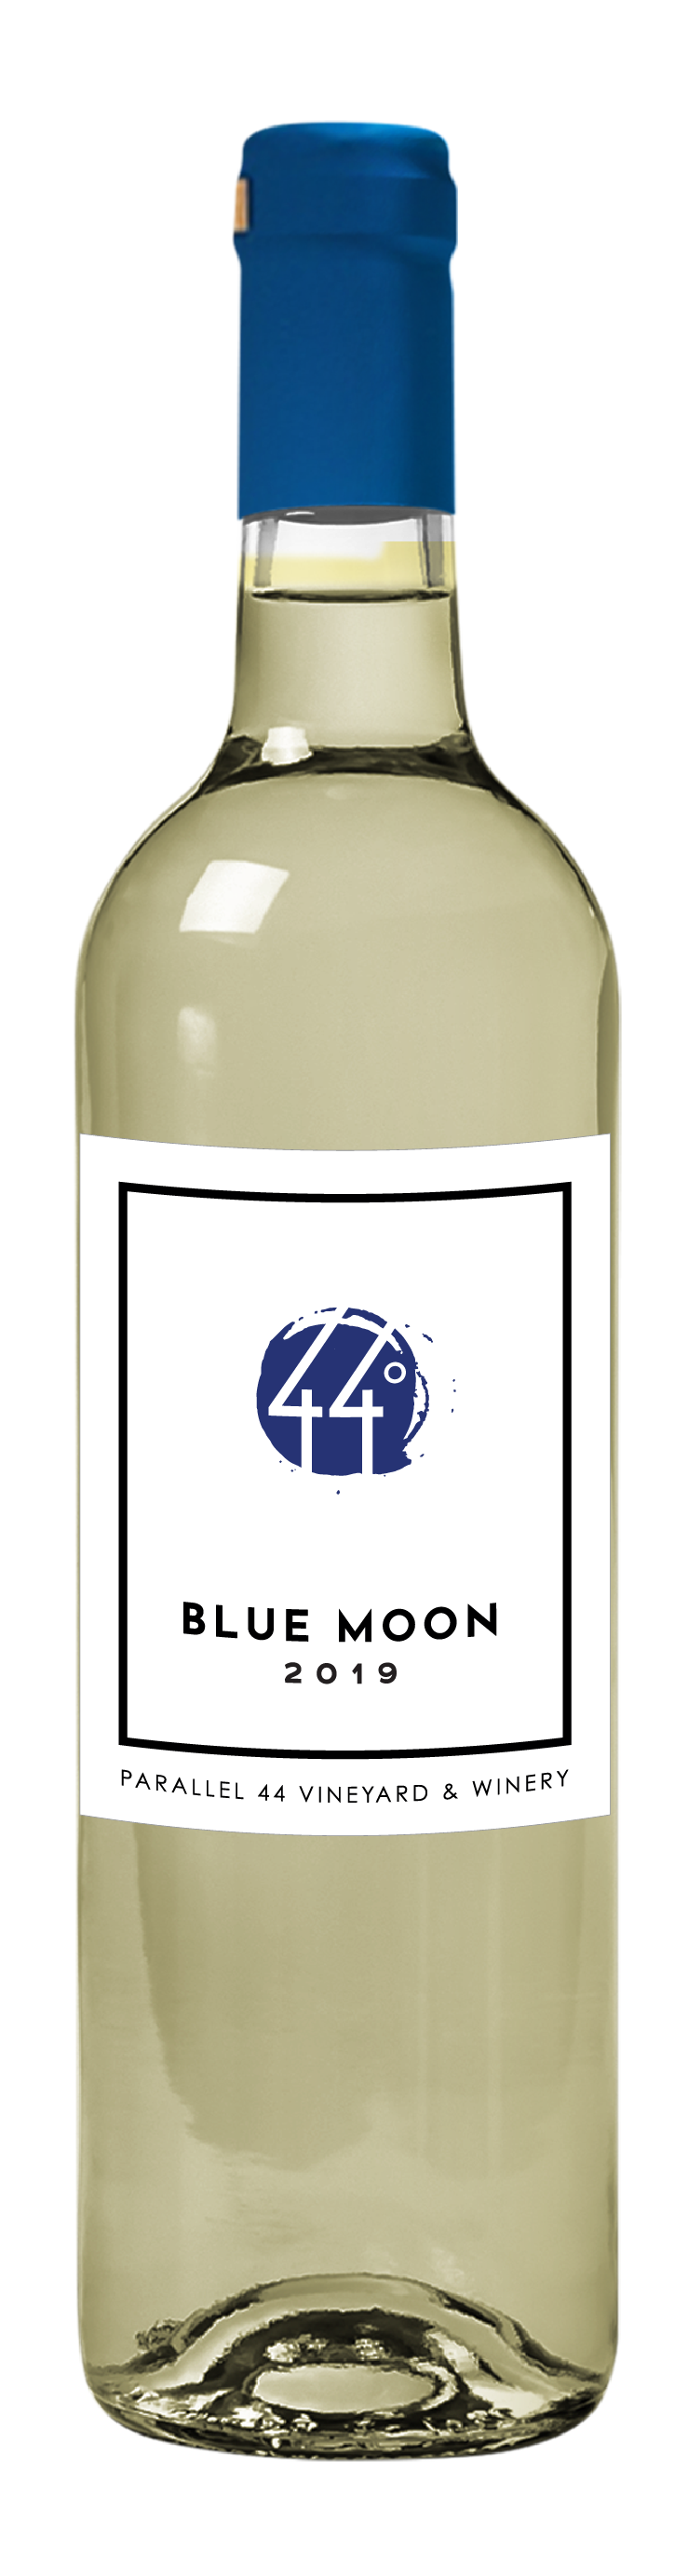 Blue Moon Parallel 44